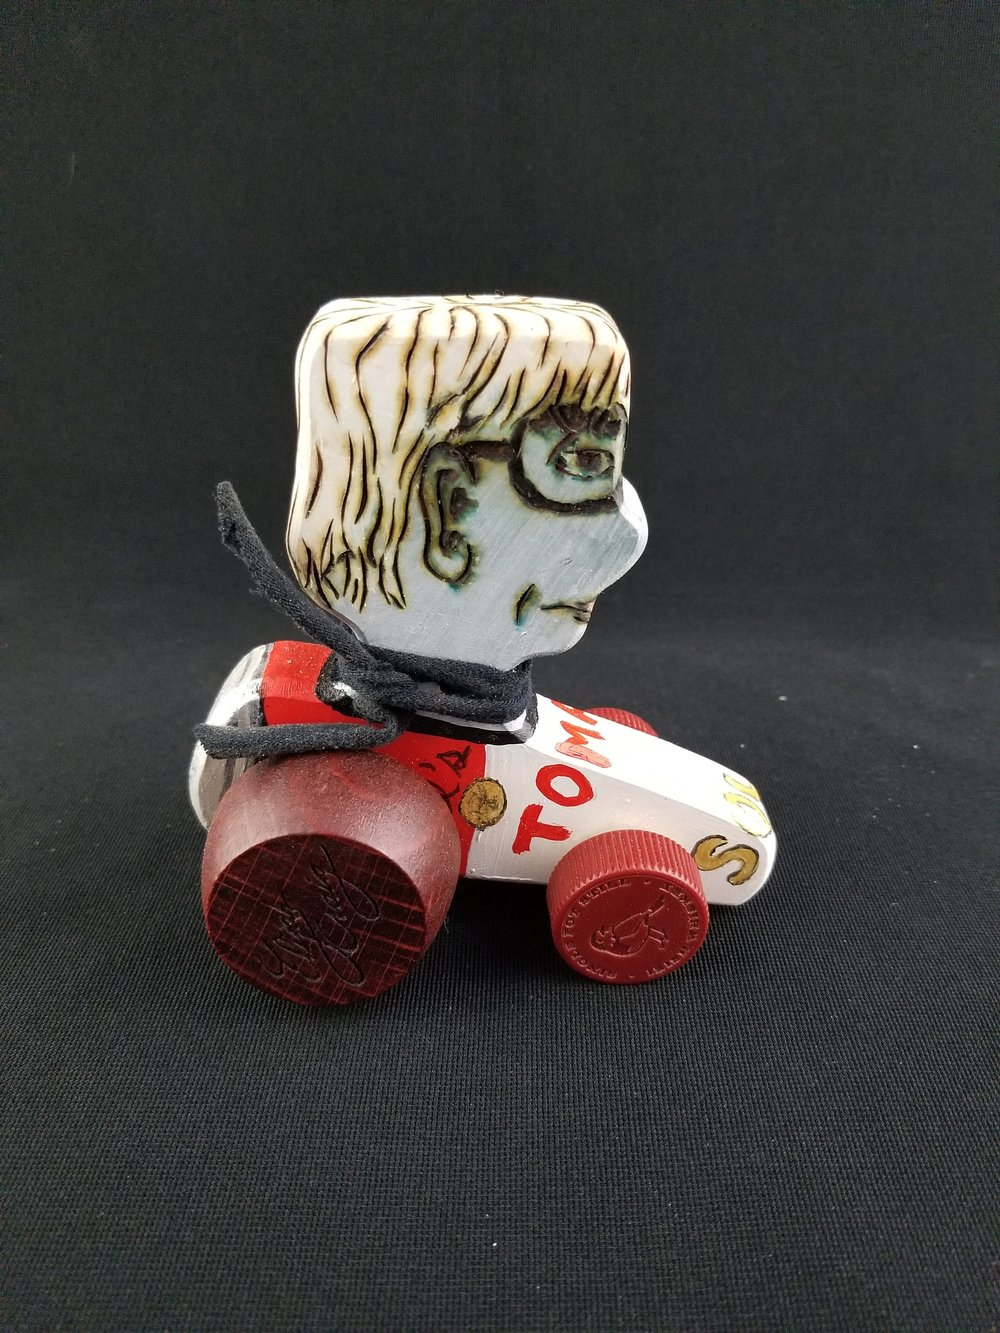 We use recycled champagne and liquor corks to make cork cars. Lately the creations have verged on miniature art and not quite for the kids. In case you don't recognize him right away this one is Andy Warhol riding a Campbell's soup can.